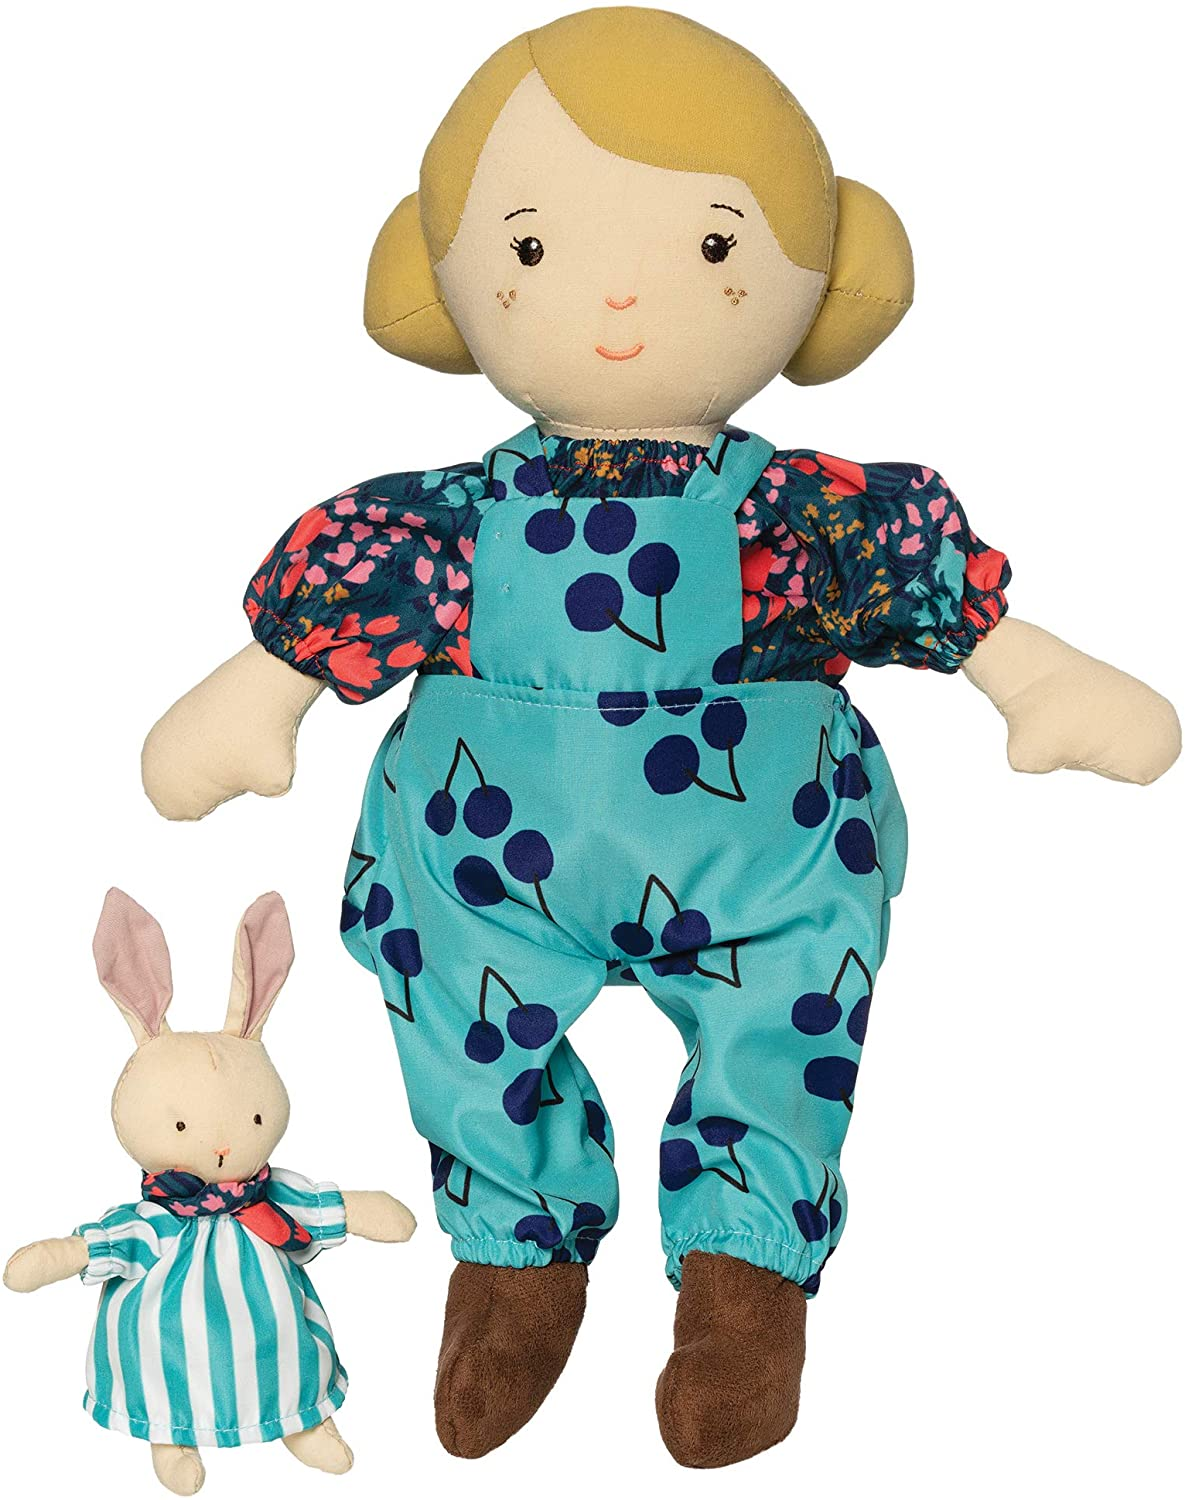 Manhattan Toy Playdate Friends Ollie Machine Washable and Dryer Safe 14 Inch Doll with Companion Stuffed Animal